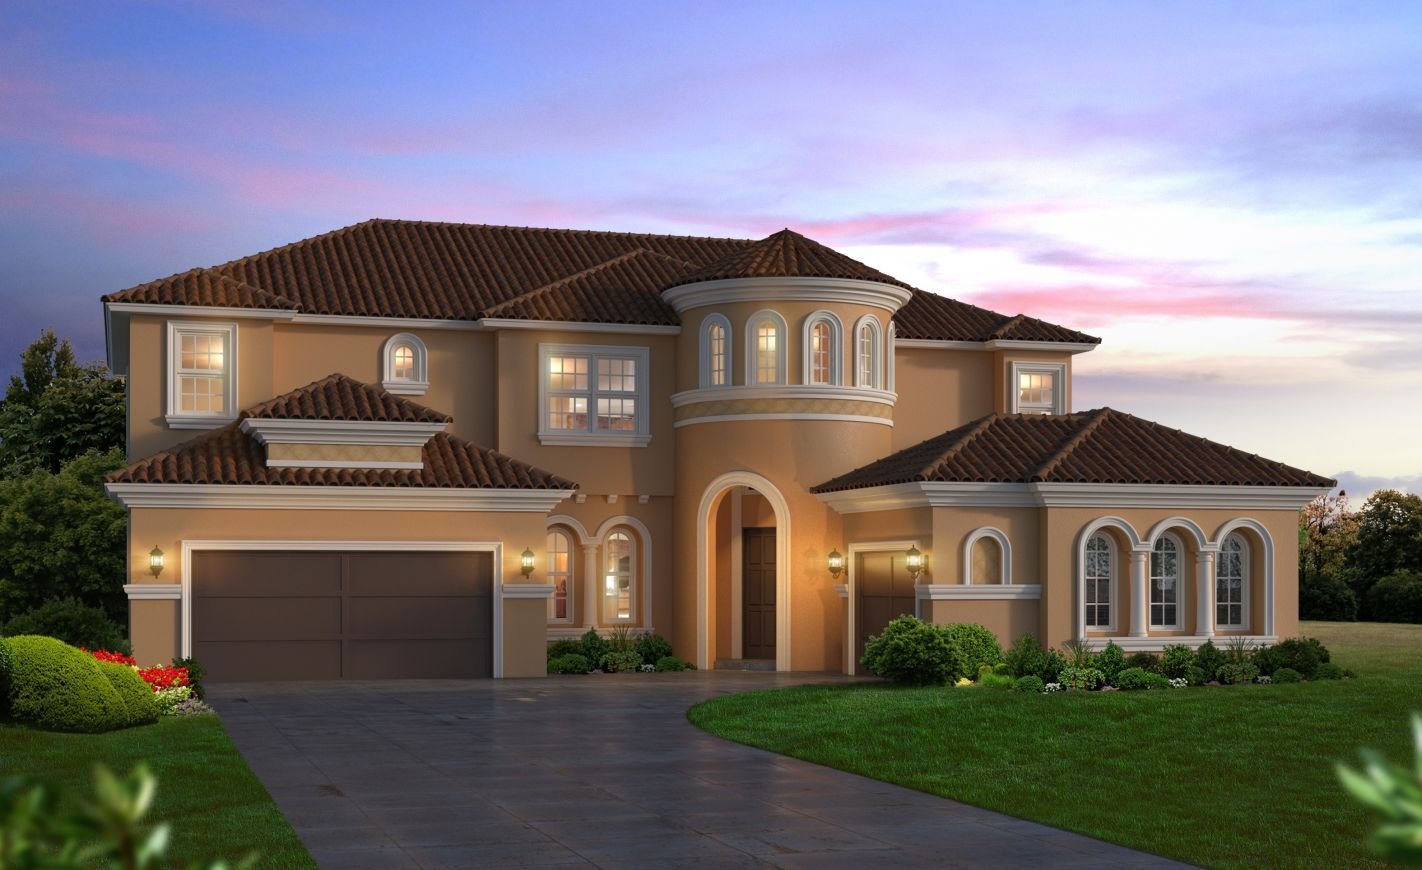 Lake magdalene new homes topix for Florida house plans for sale